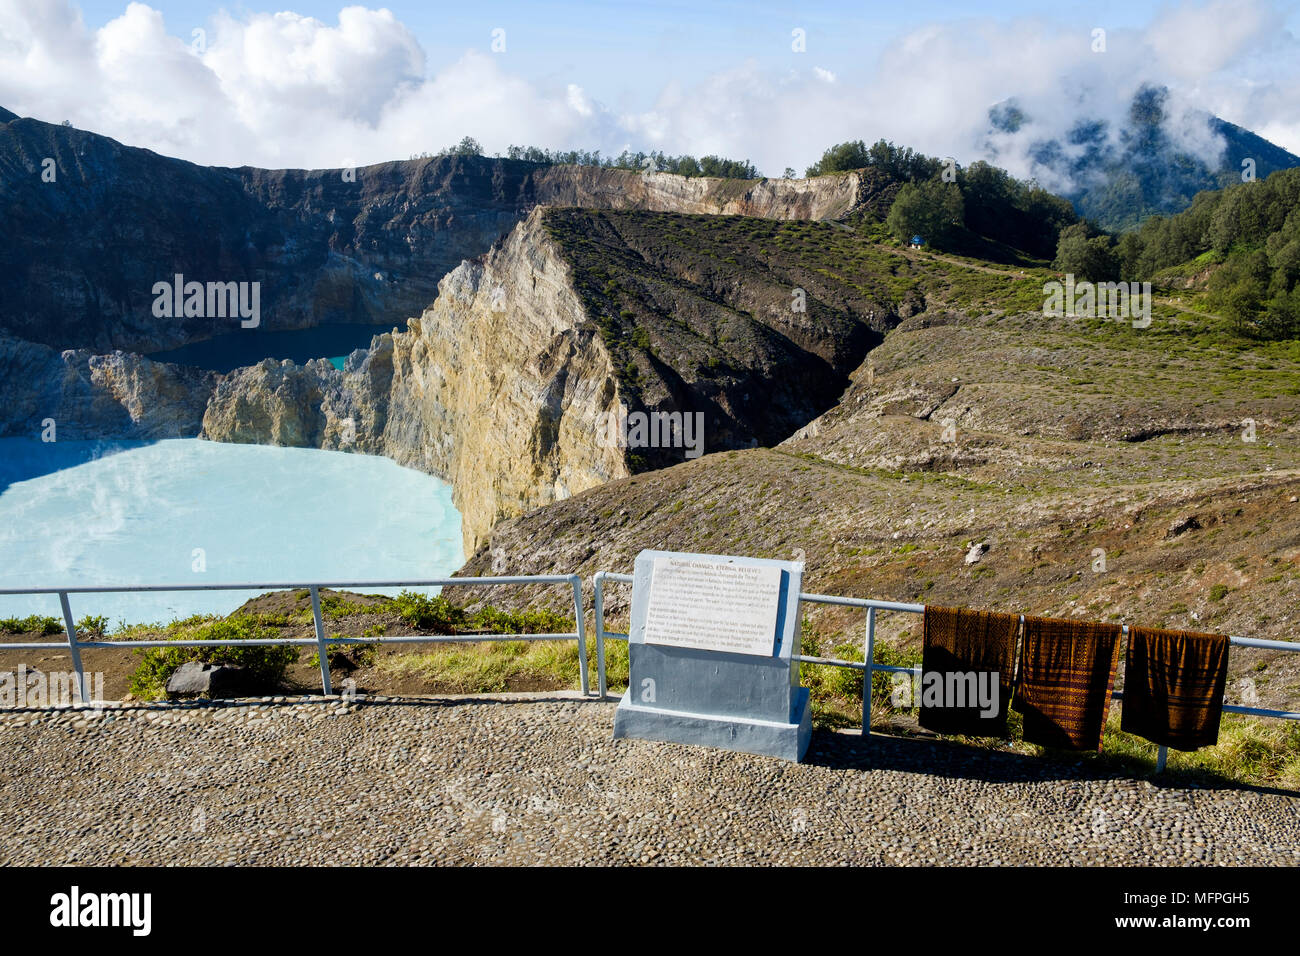 Ikat textiles for sale on viewing platform at the summit of Mount Kelimutu, Ende Regency, Flores Island, Indonesia. - Stock Image